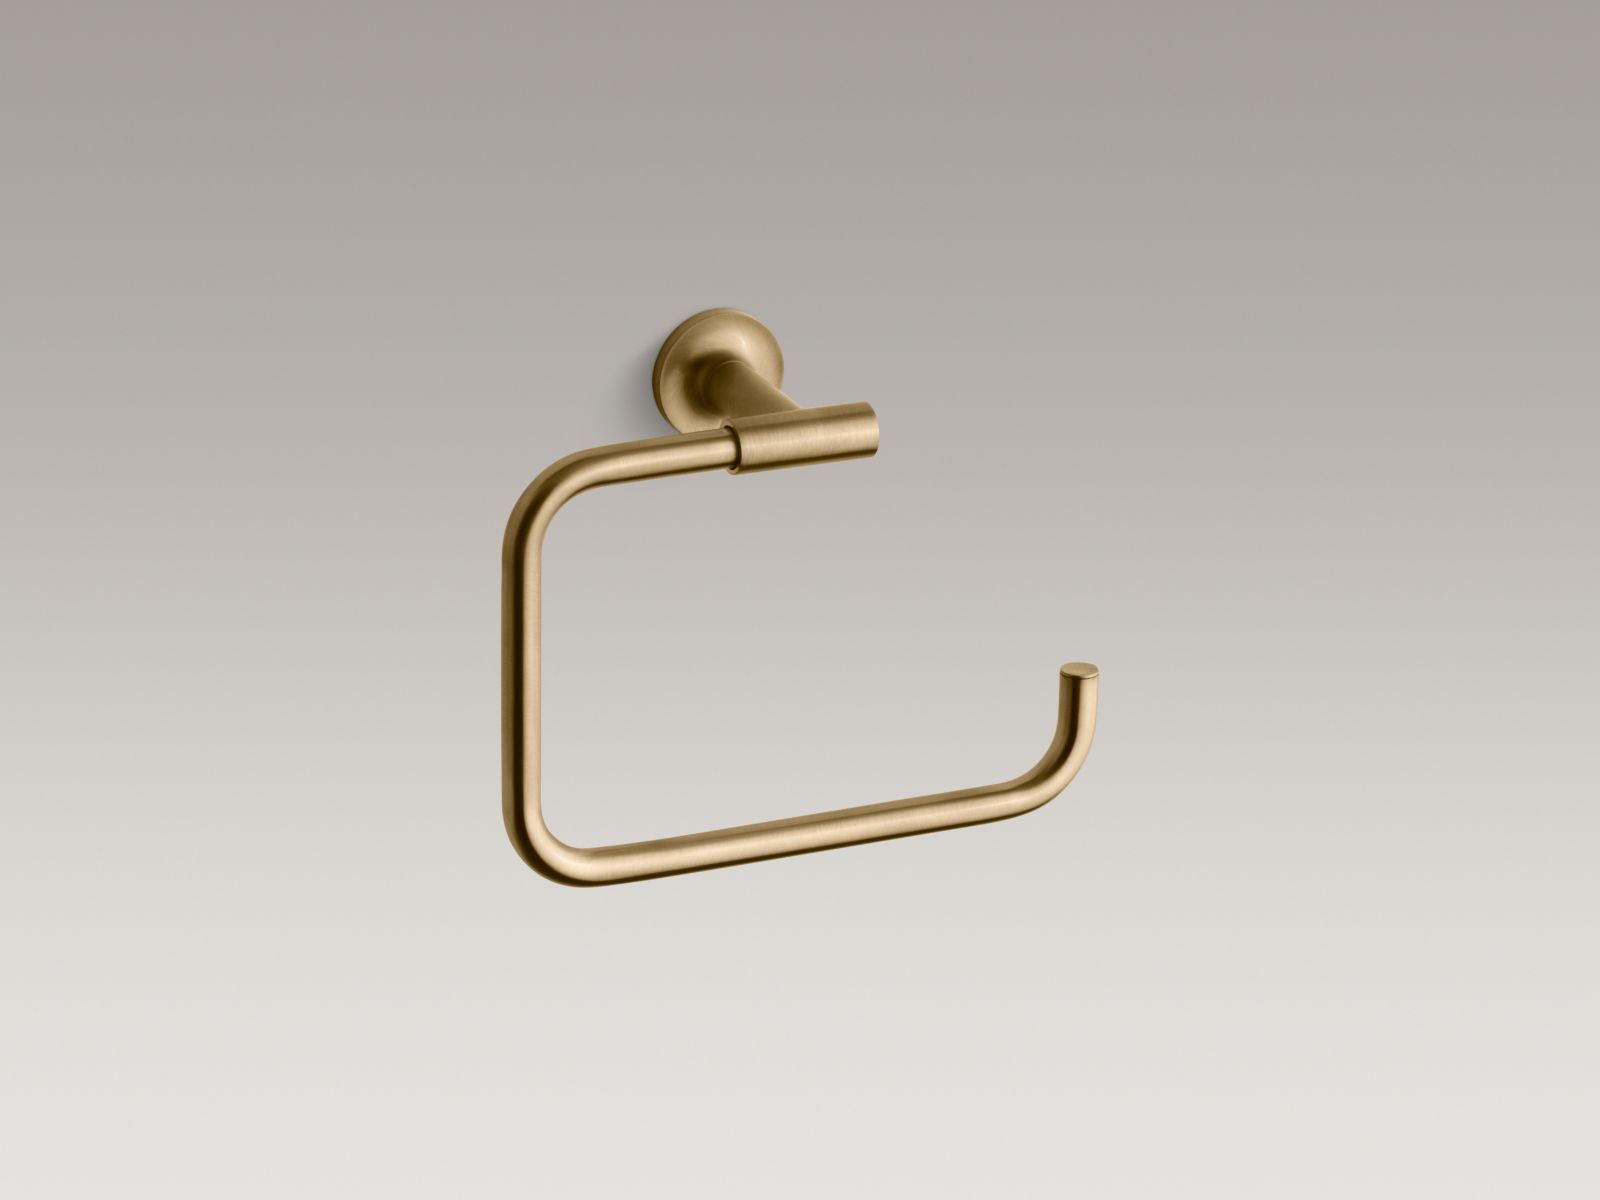 Kohler K-14441-BGD Purist Towel Ring Vibrant Moderne Brushed Gold